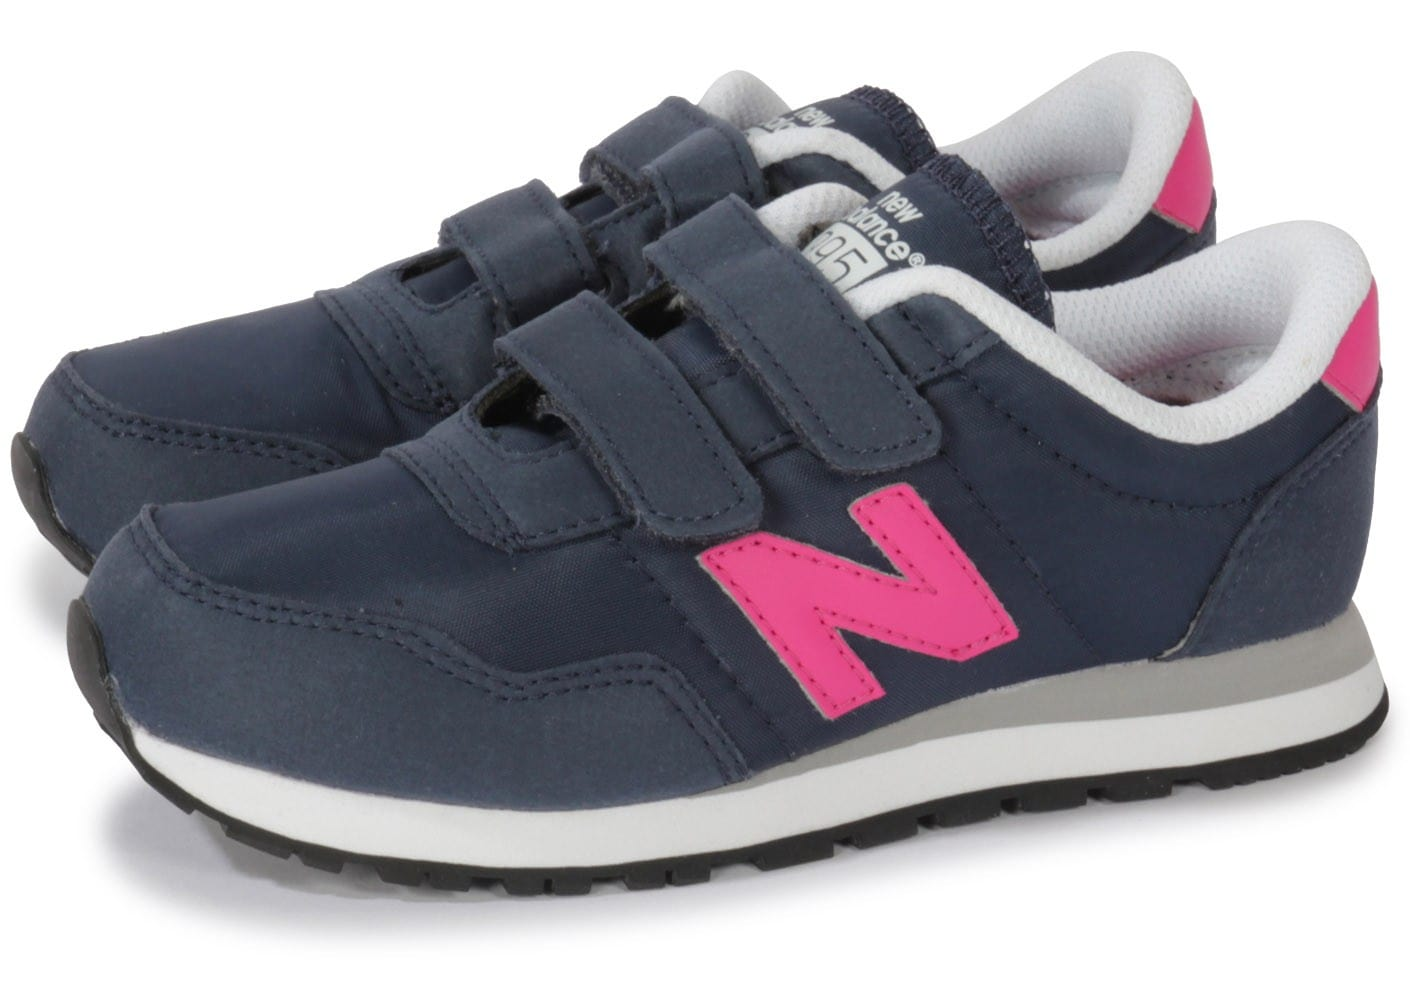 new balance bleu et rose shop jordan chaussures. Black Bedroom Furniture Sets. Home Design Ideas